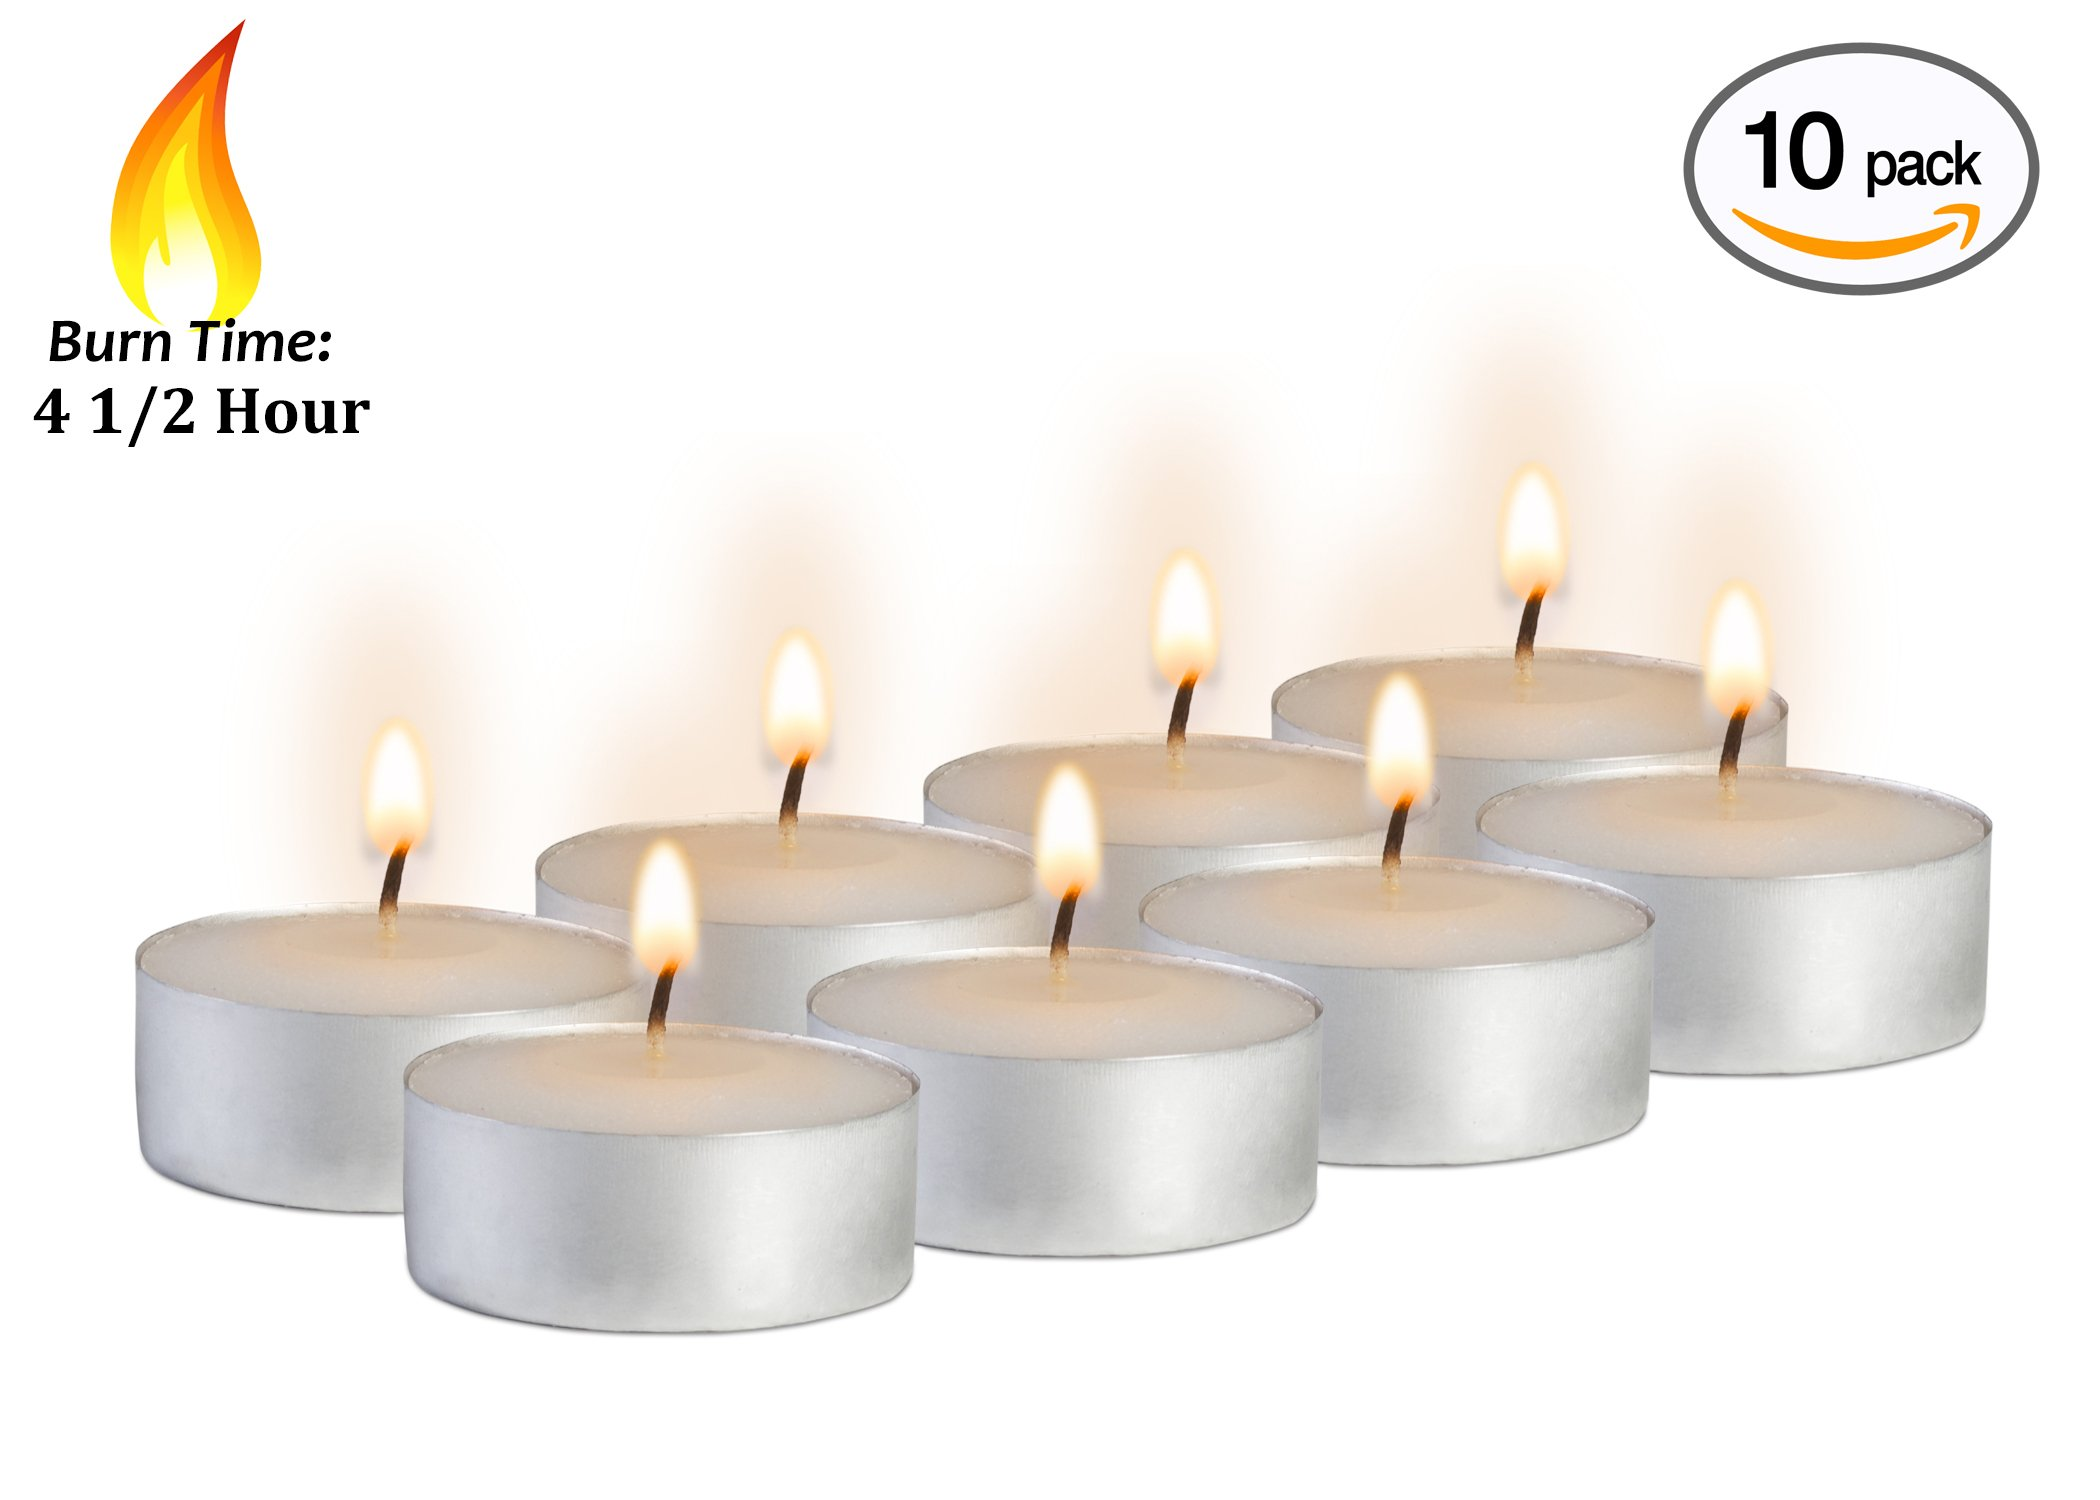 10pcs Unscented Tealight Candles Cool White for Wedding Party Decorations New